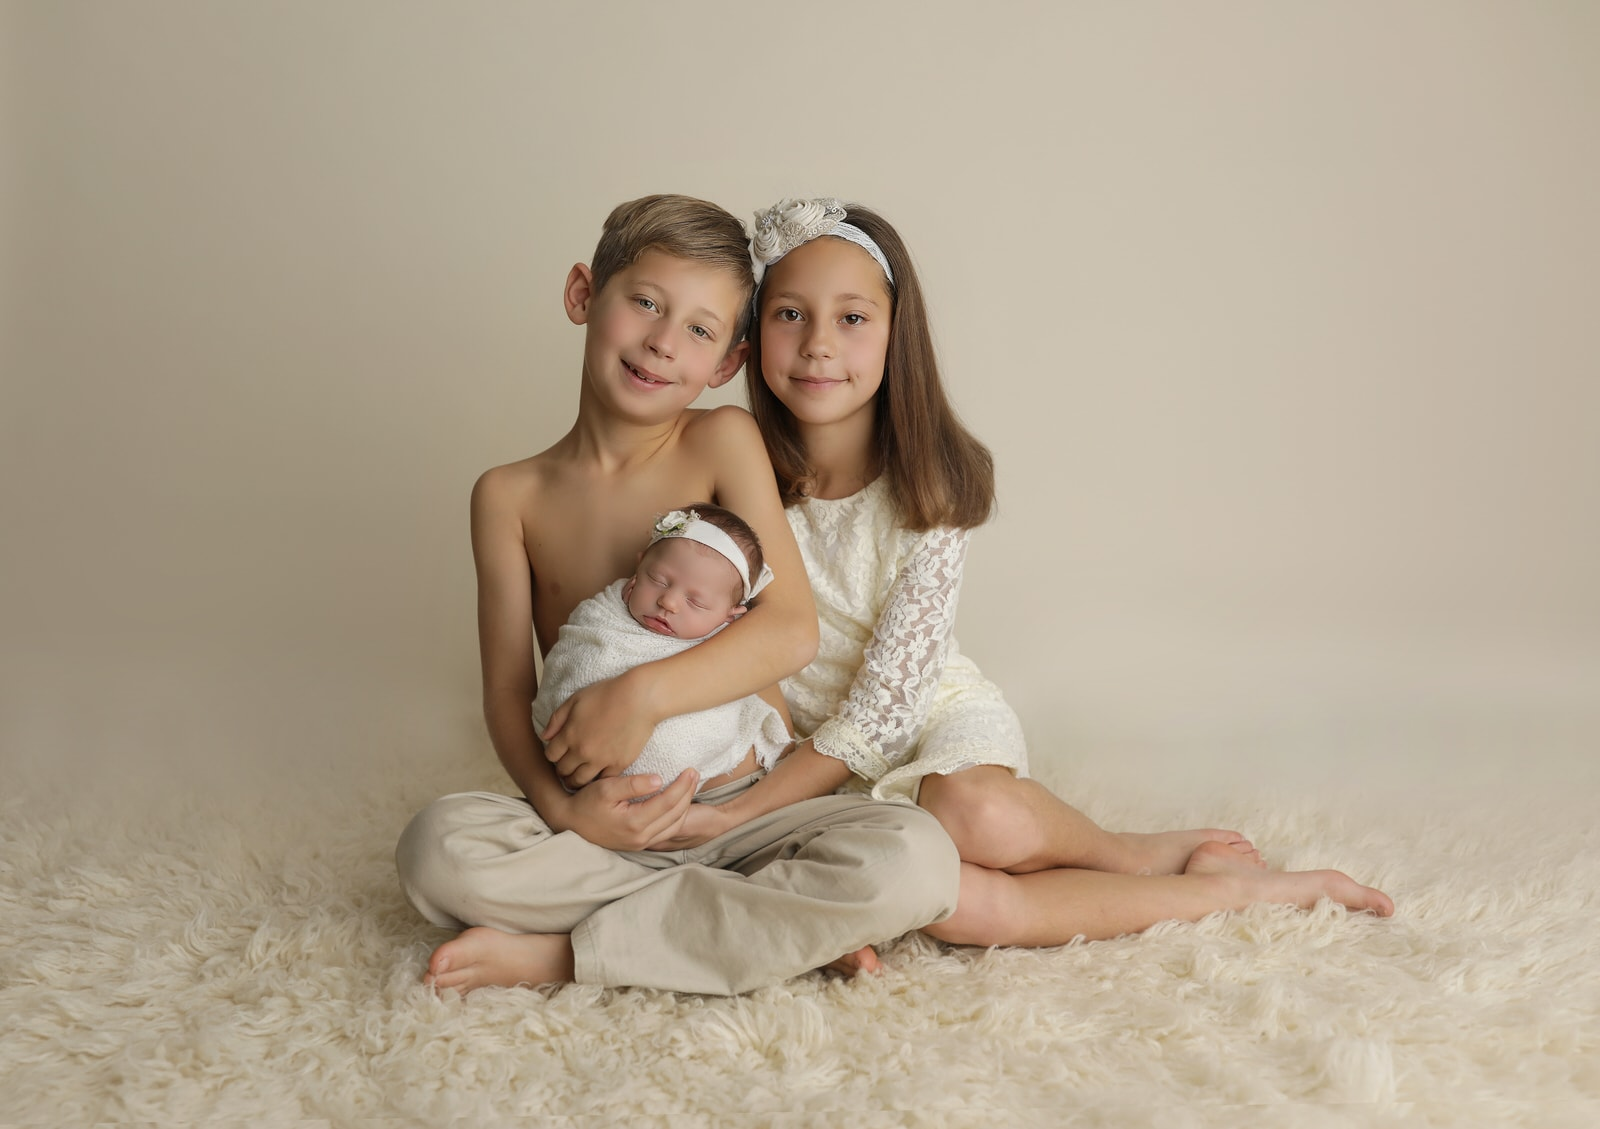 newborn photoshoot with older brother and sister near Harrisburg PA